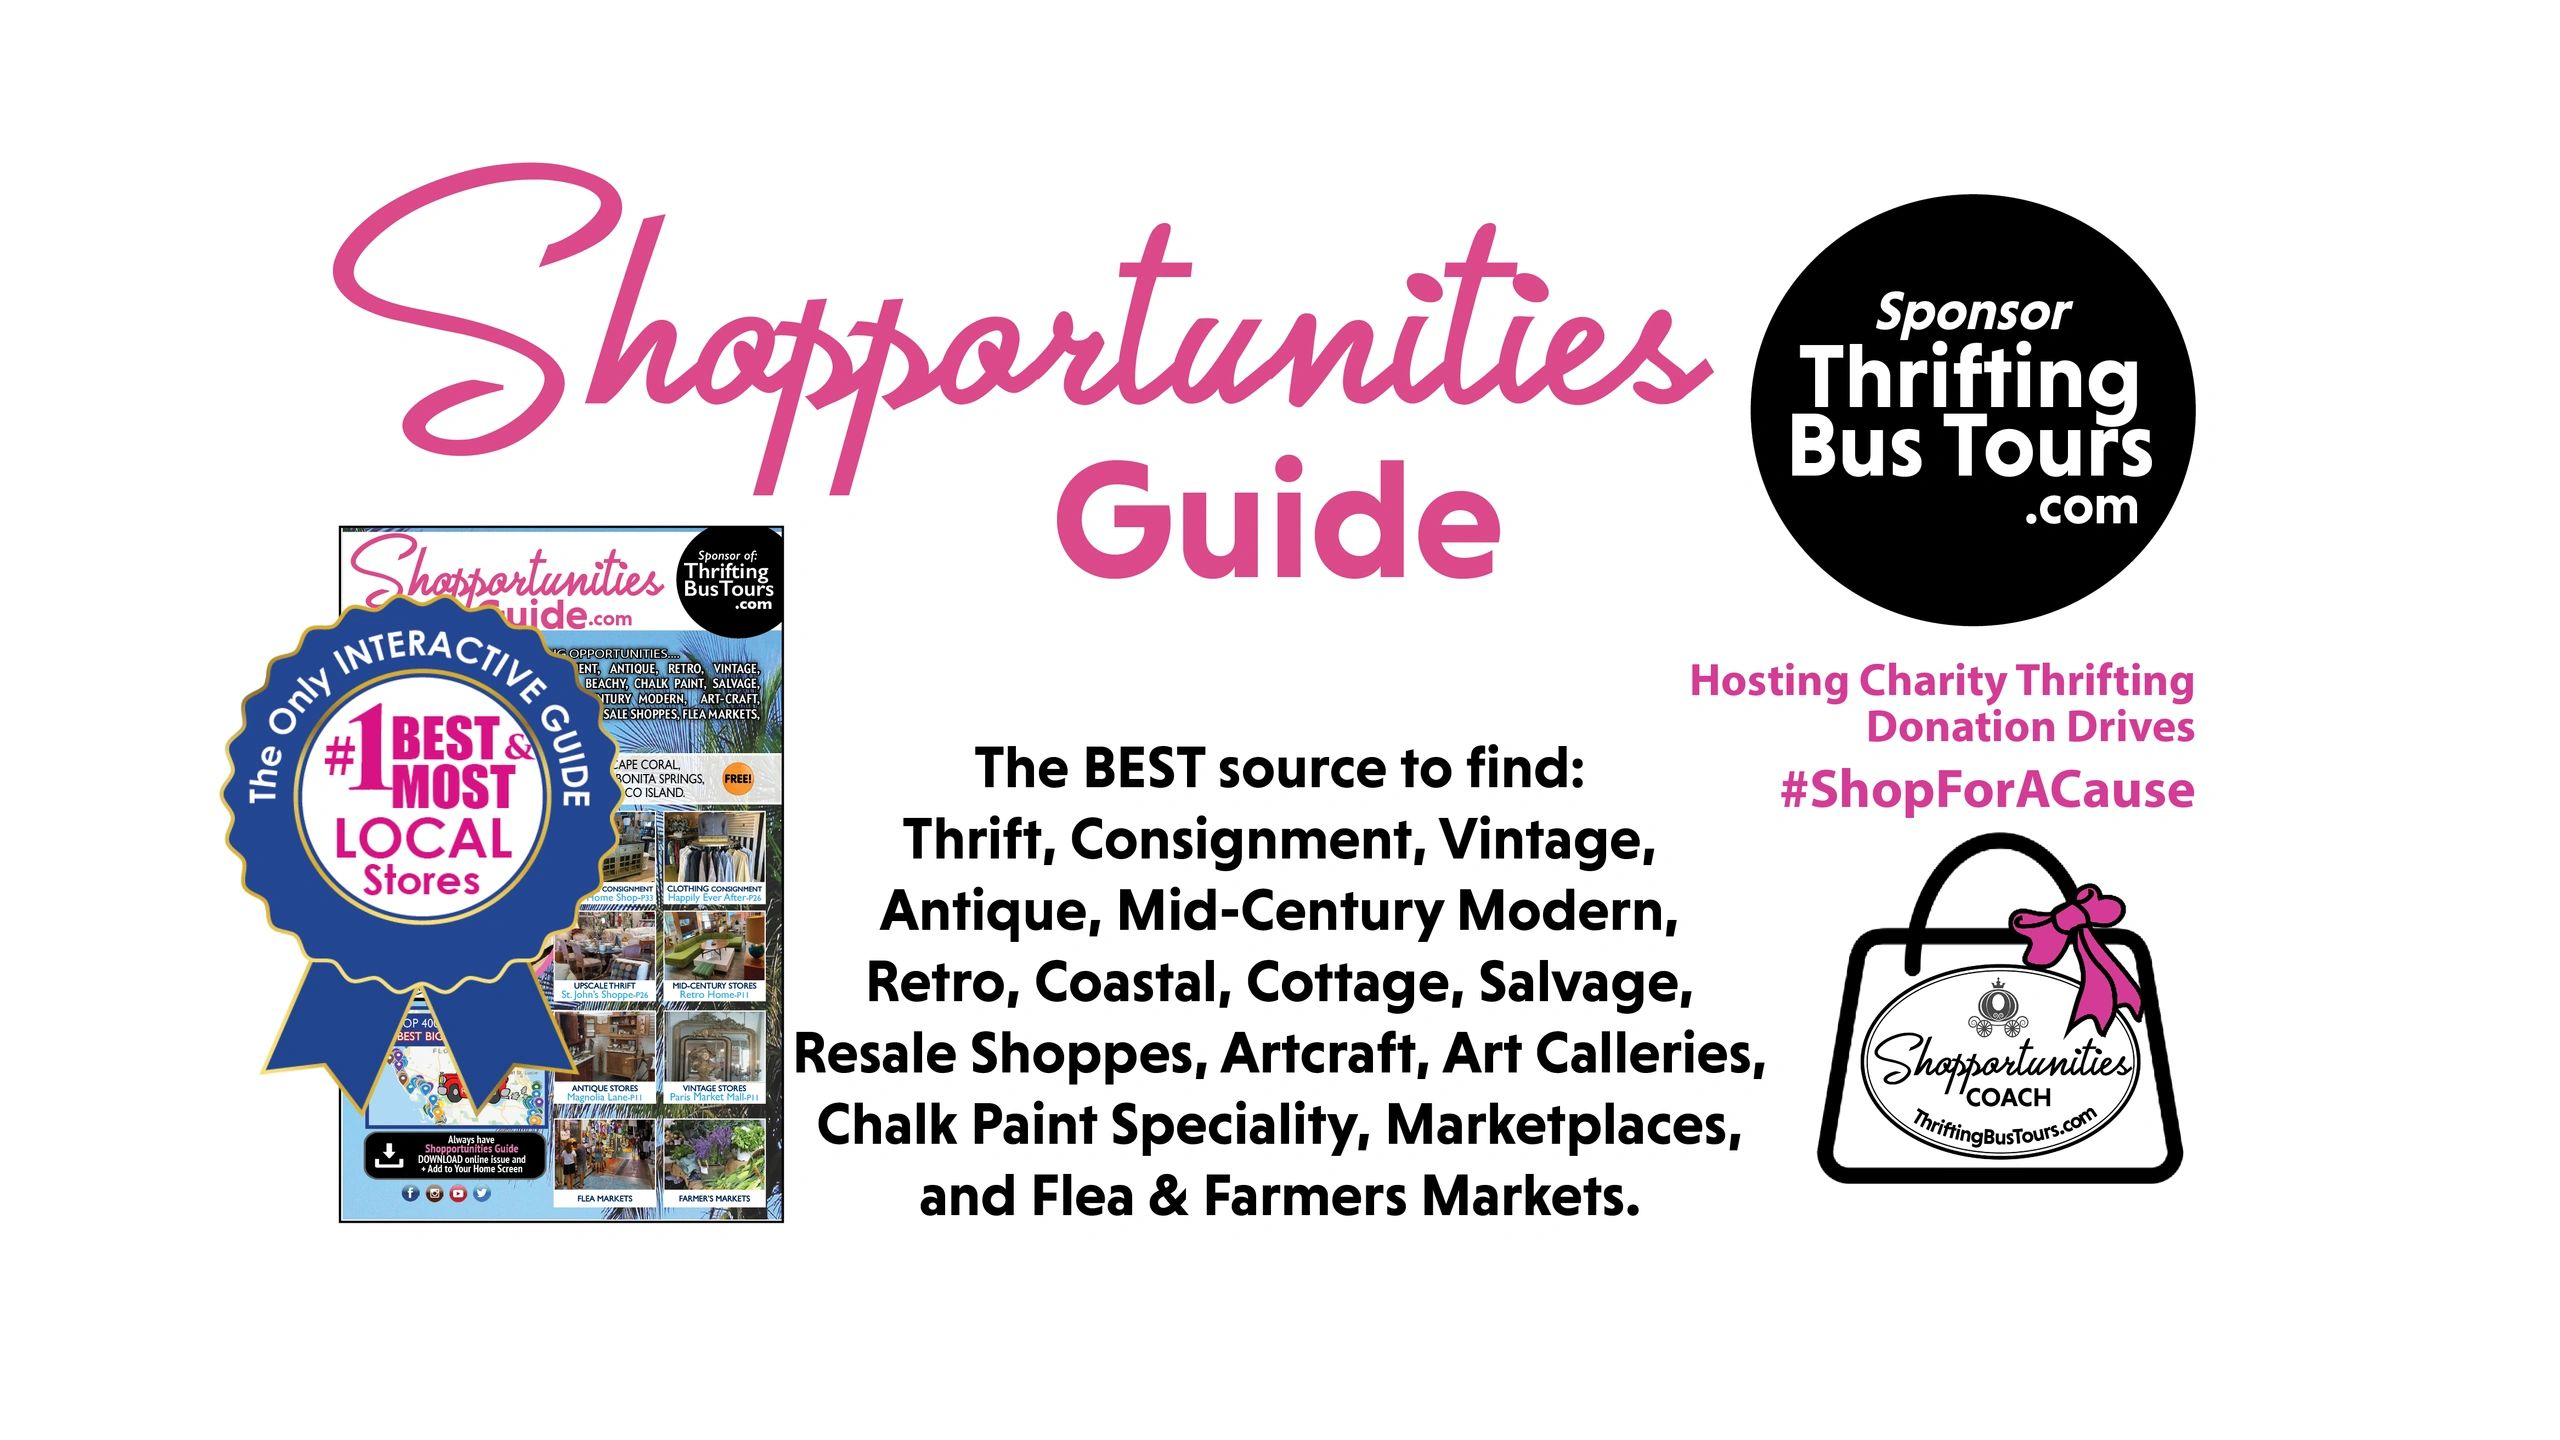 The Best Source to Find Thrift, Consignment, Vintage, Antique, Resale Stores, Flea & Farmers Markets